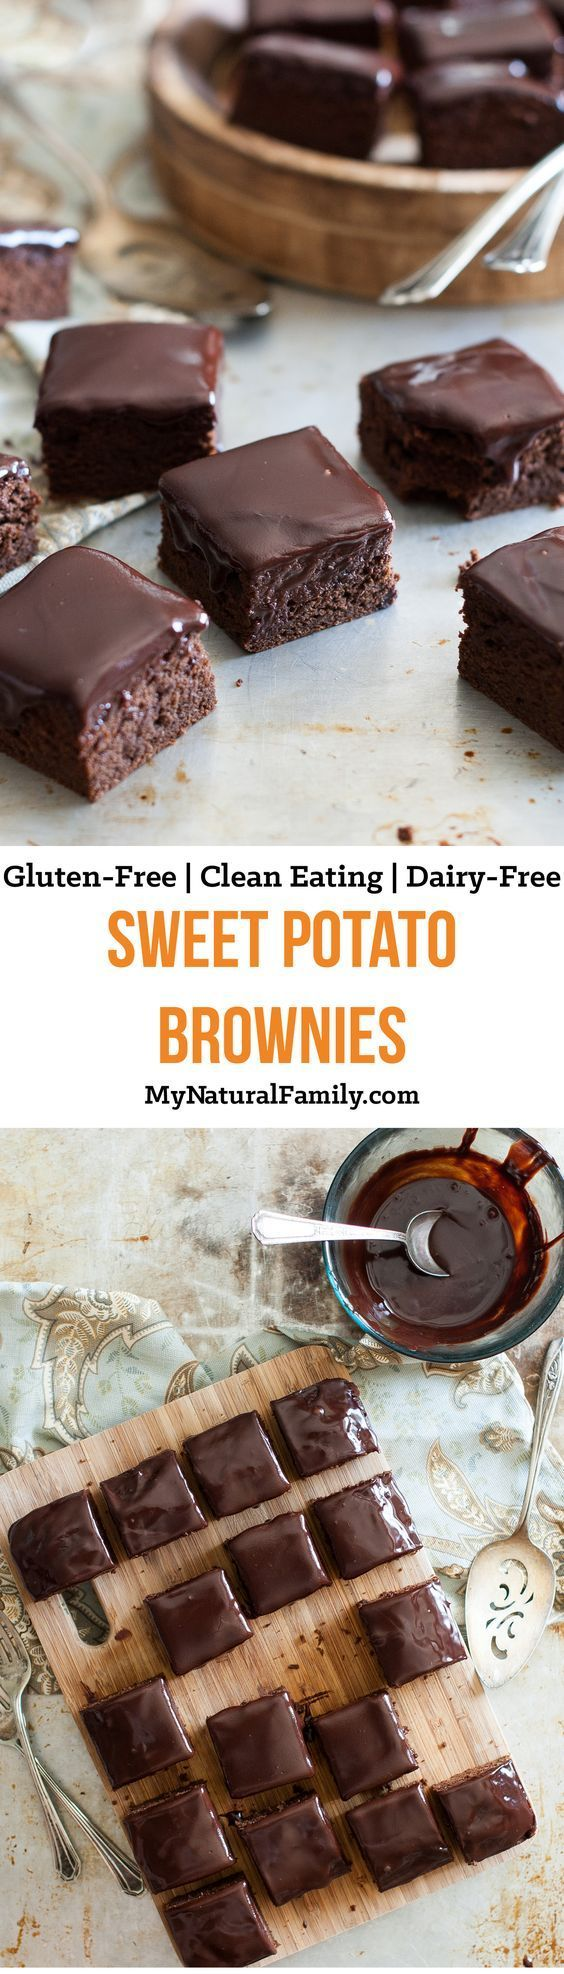 I love this sweet potato brownies recipe because they are moist and healthy from the sweet potatoes and they don't taste healthy, but they are - plus they are ever to adapt to different diets.